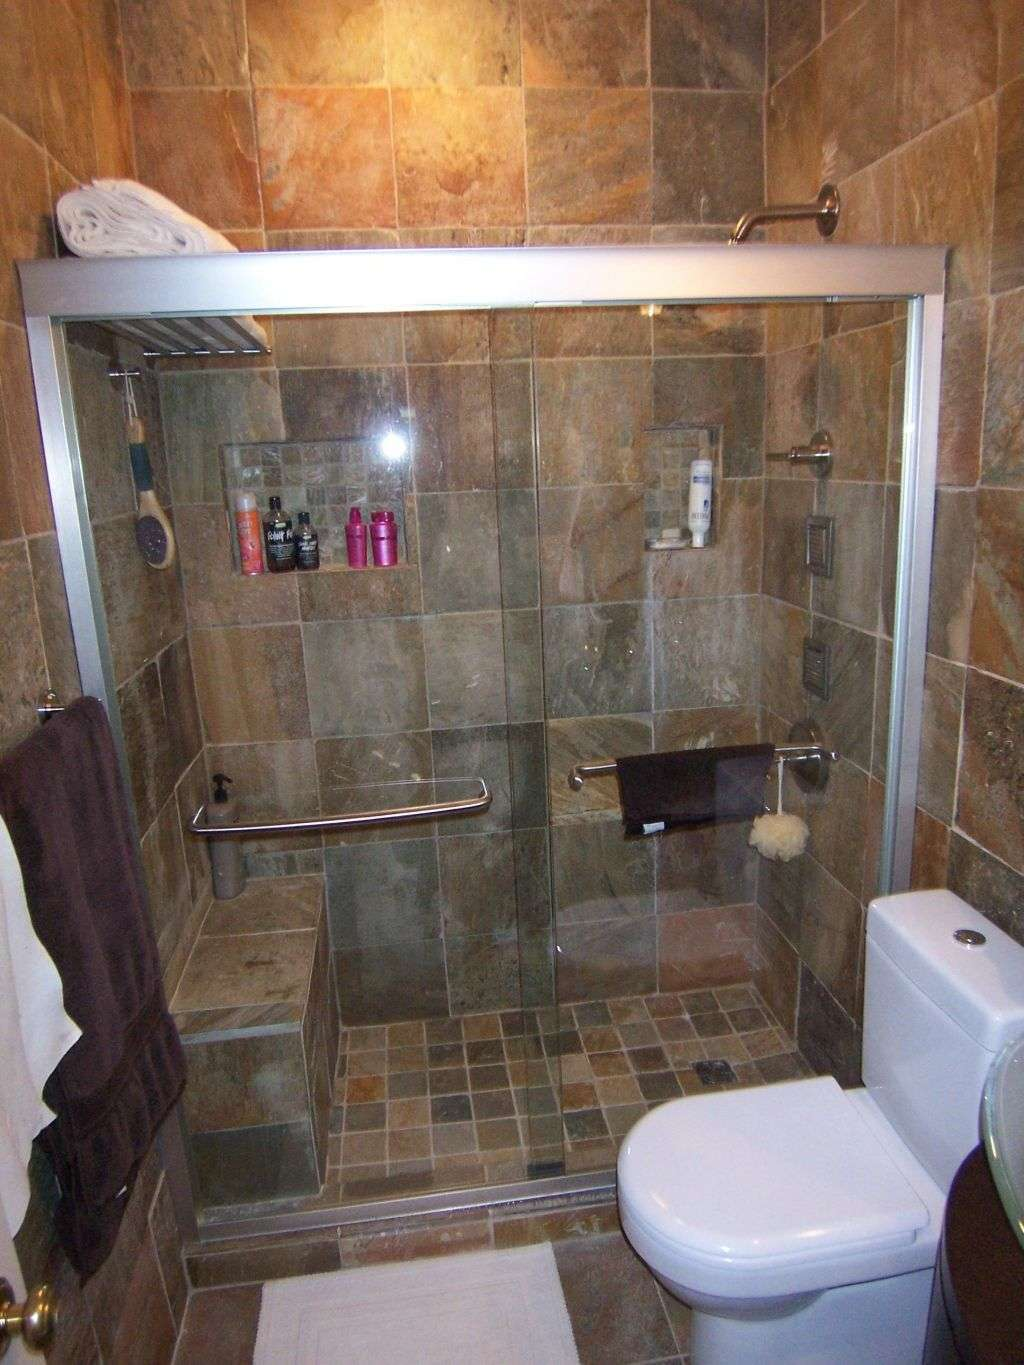 40 wonderful pictures and ideas of 1920s bathroom tile designs. Black Bedroom Furniture Sets. Home Design Ideas